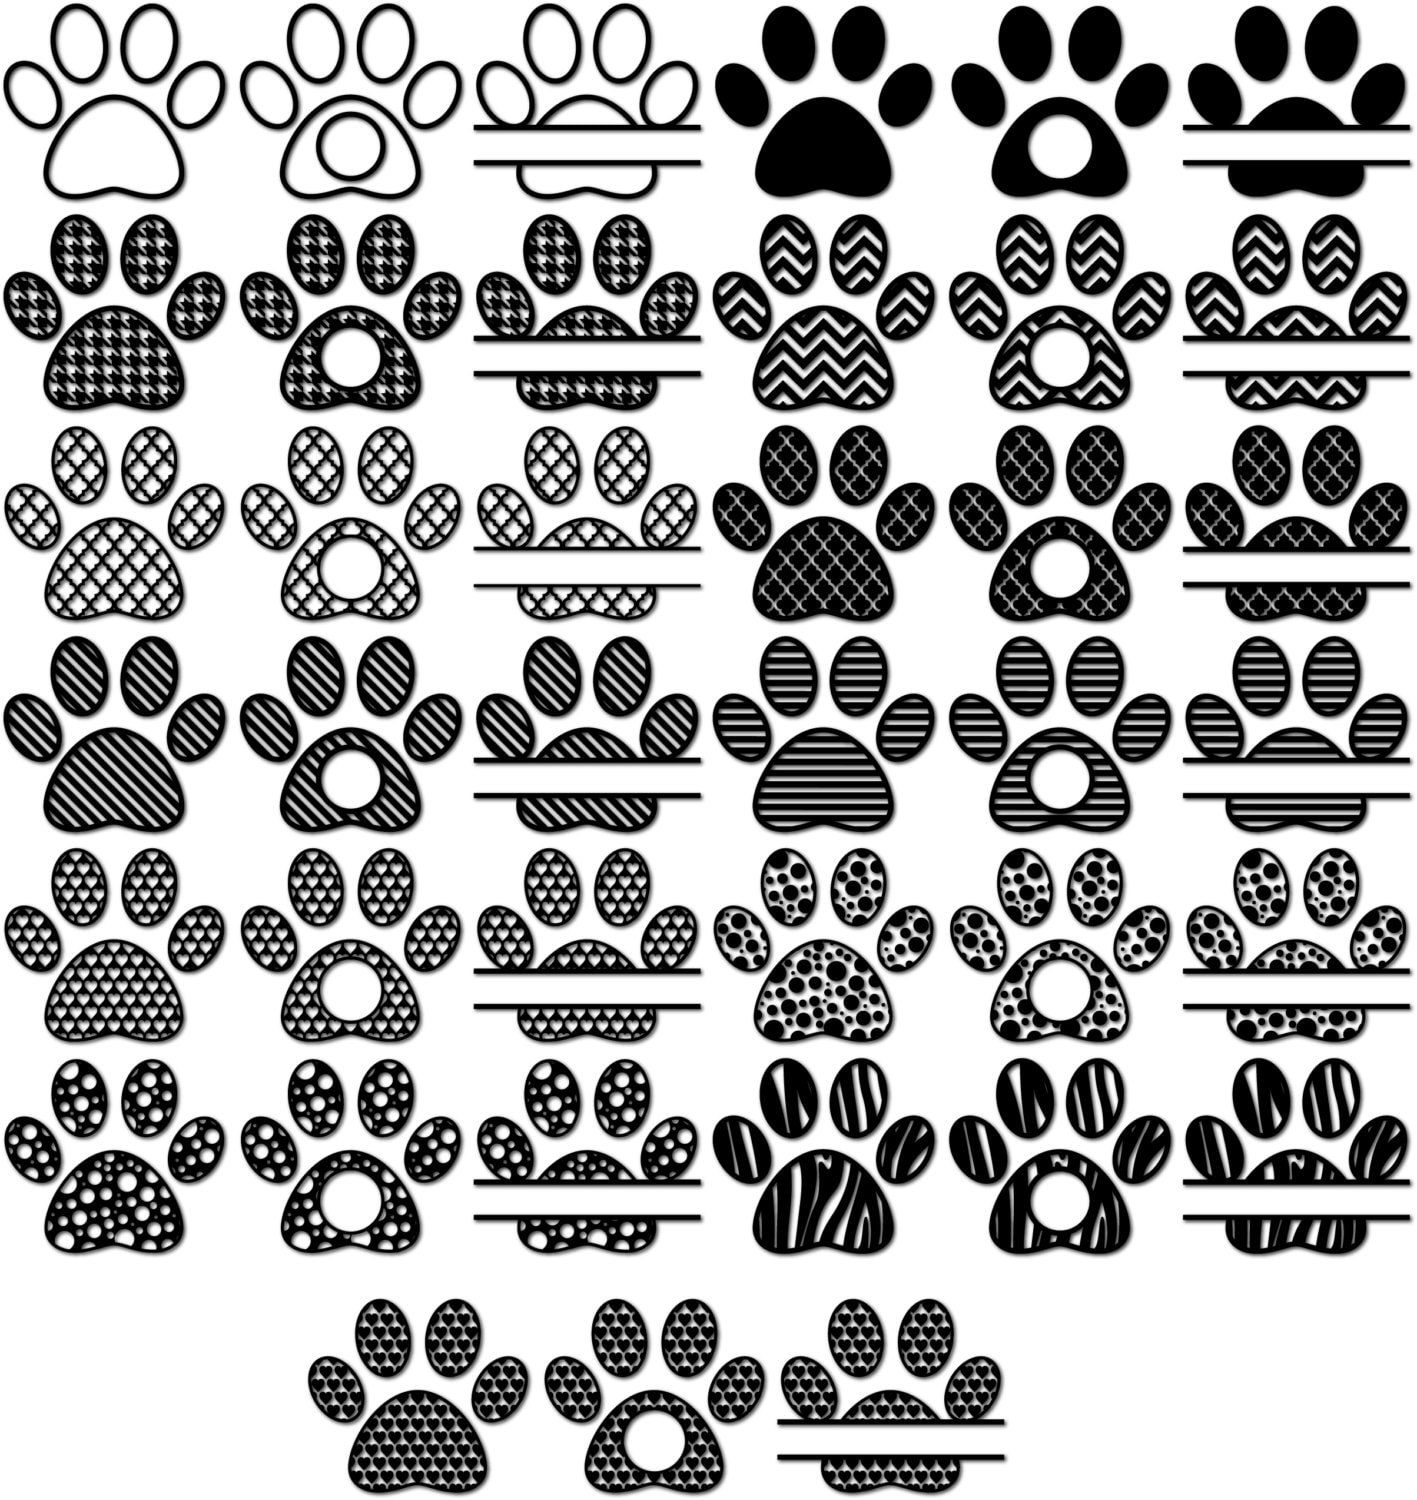 Download Paw SVG Monogram Frames for Vinyl Cutters Paw Print Svg Paw